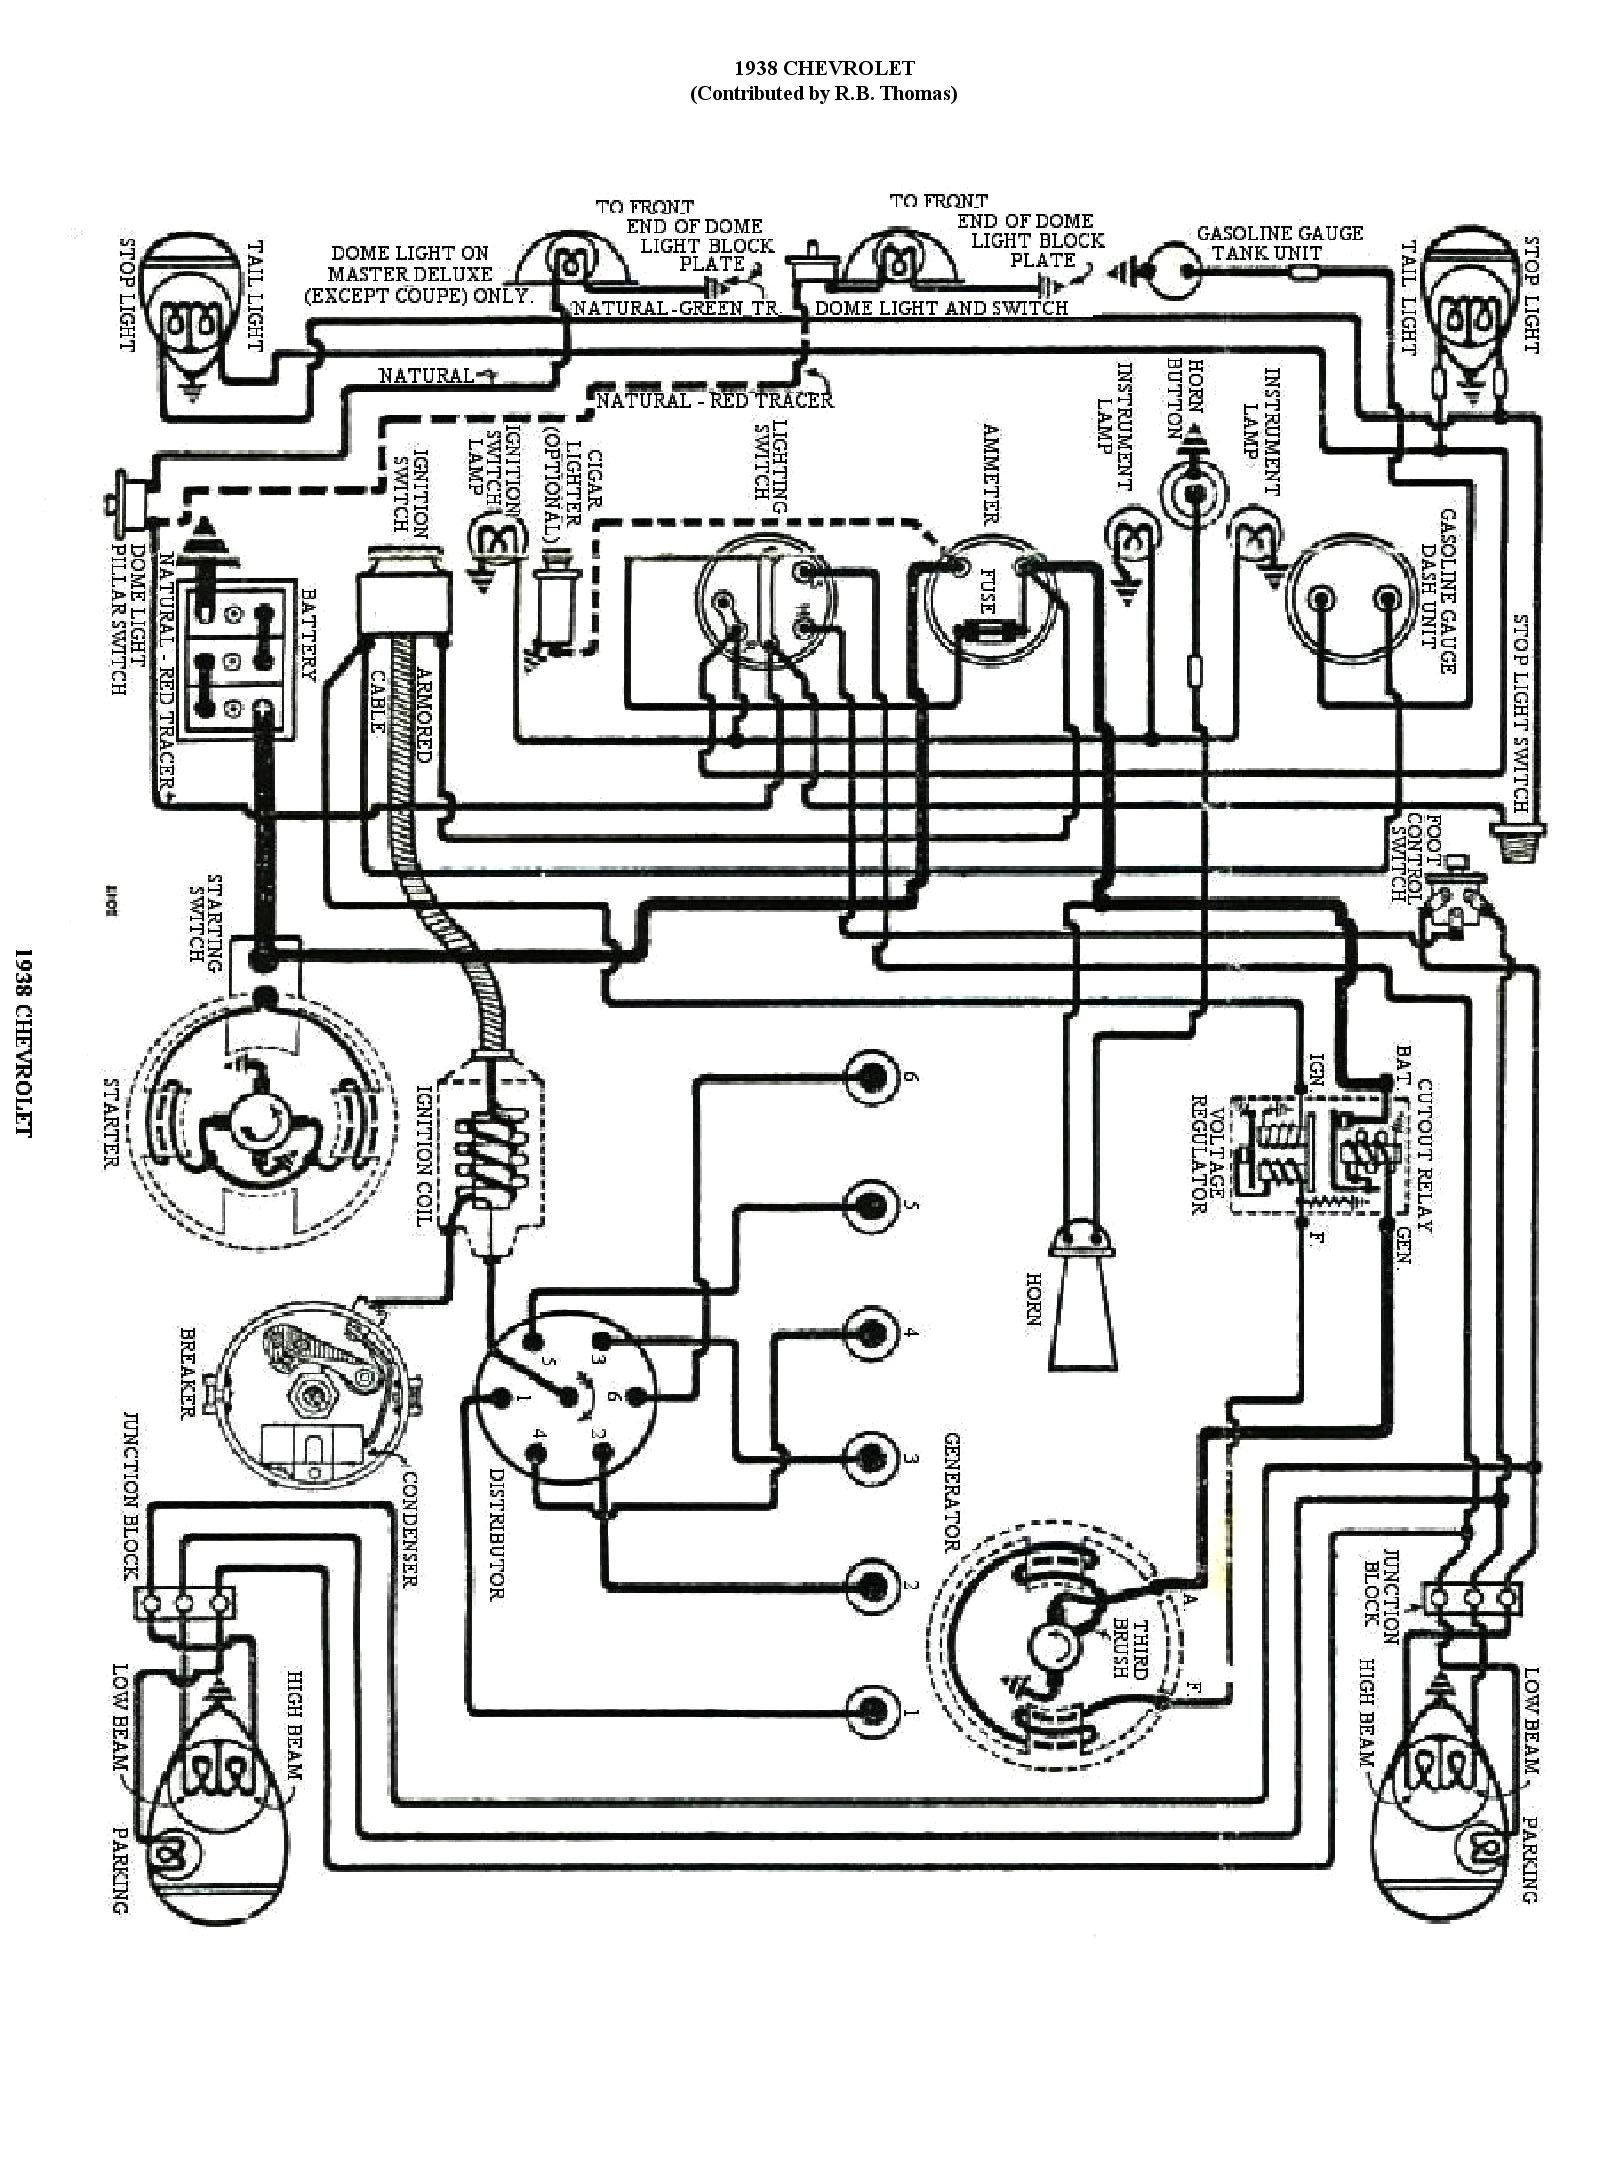 38wiring chevy wiring diagrams Chevy Truck Wiring Harness at gsmx.co